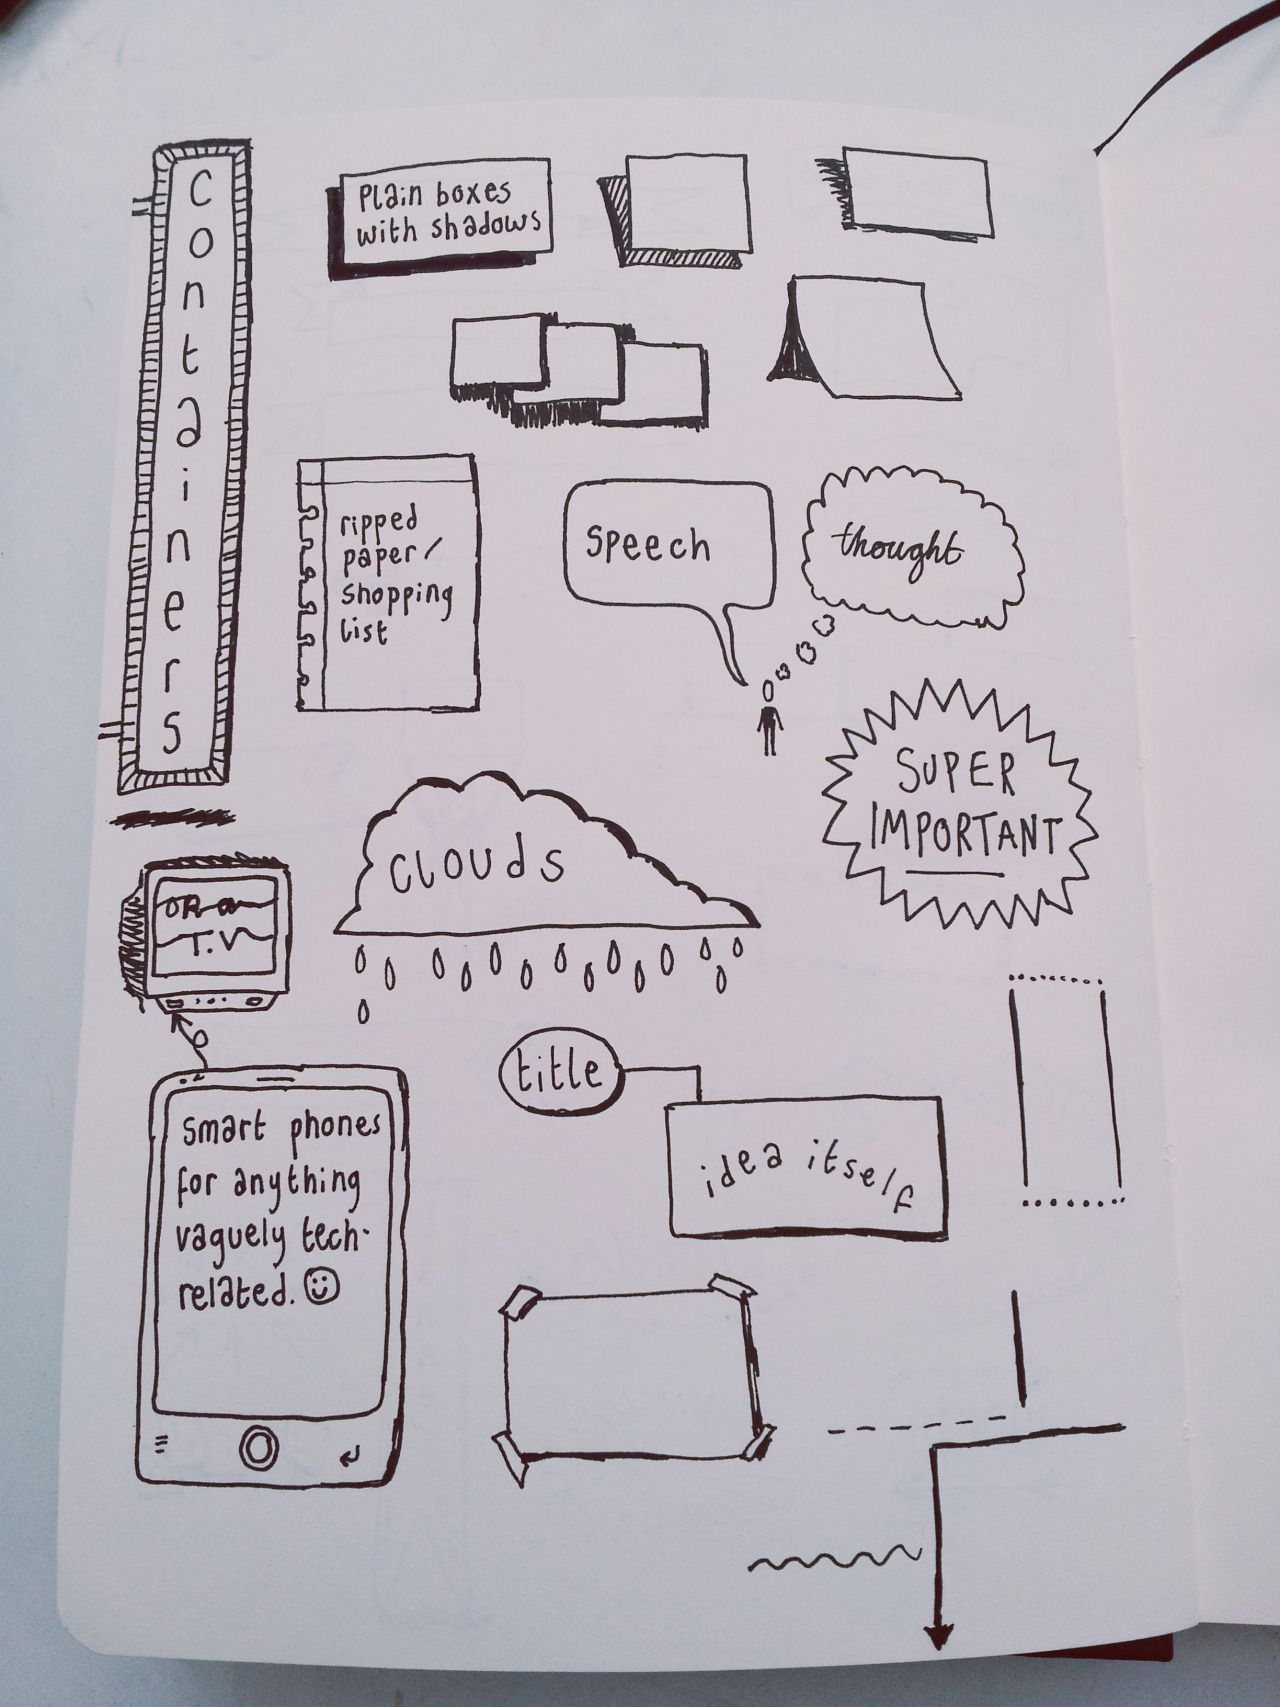 raindrop valley i recently learnt about sketchnotes and how they raindrop valley i recently learnt about sketchnotes and how they would have been quite useful for me as a very visual learner and the past 4 years of my